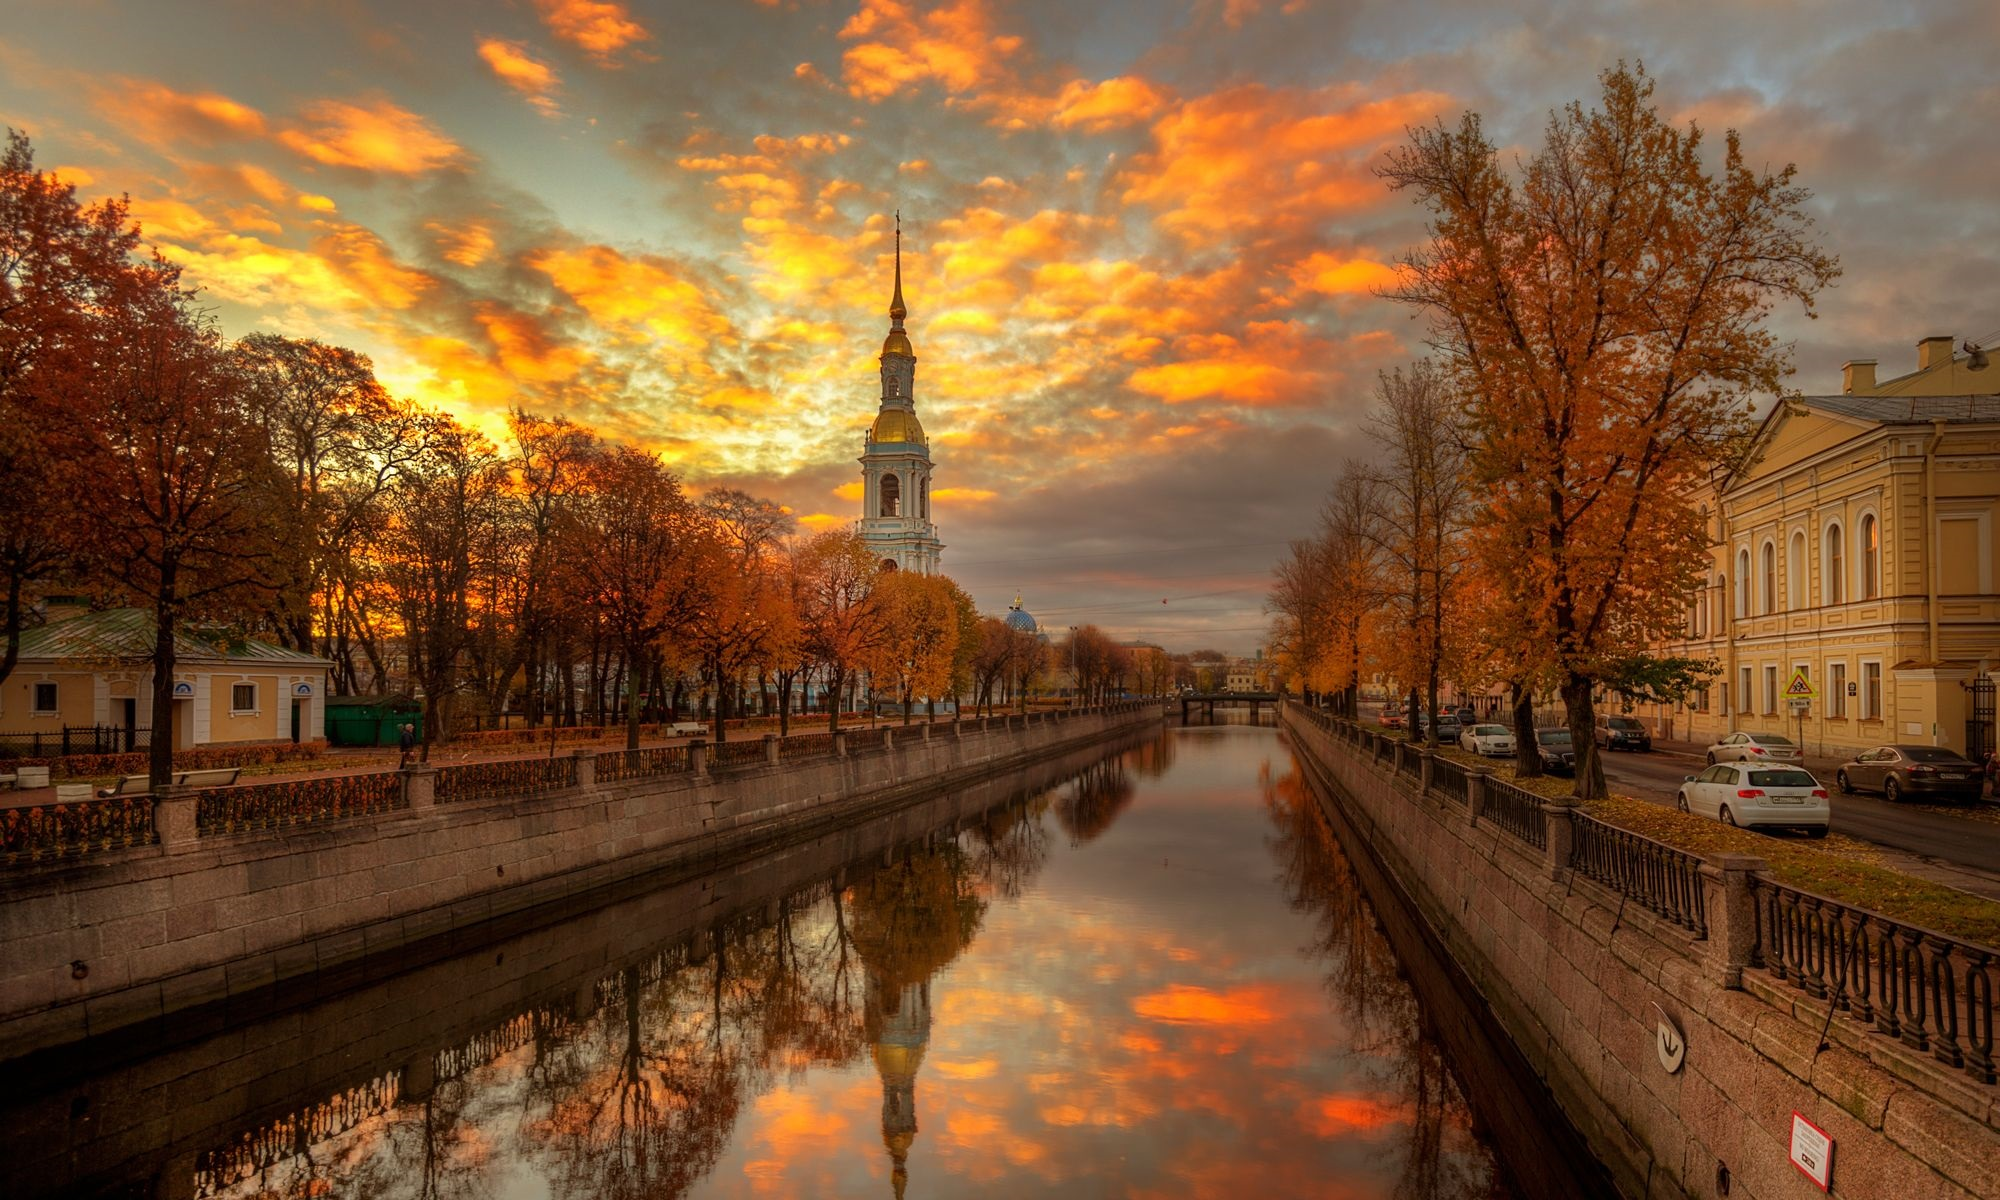 Saint Petersburg canal in autumn.